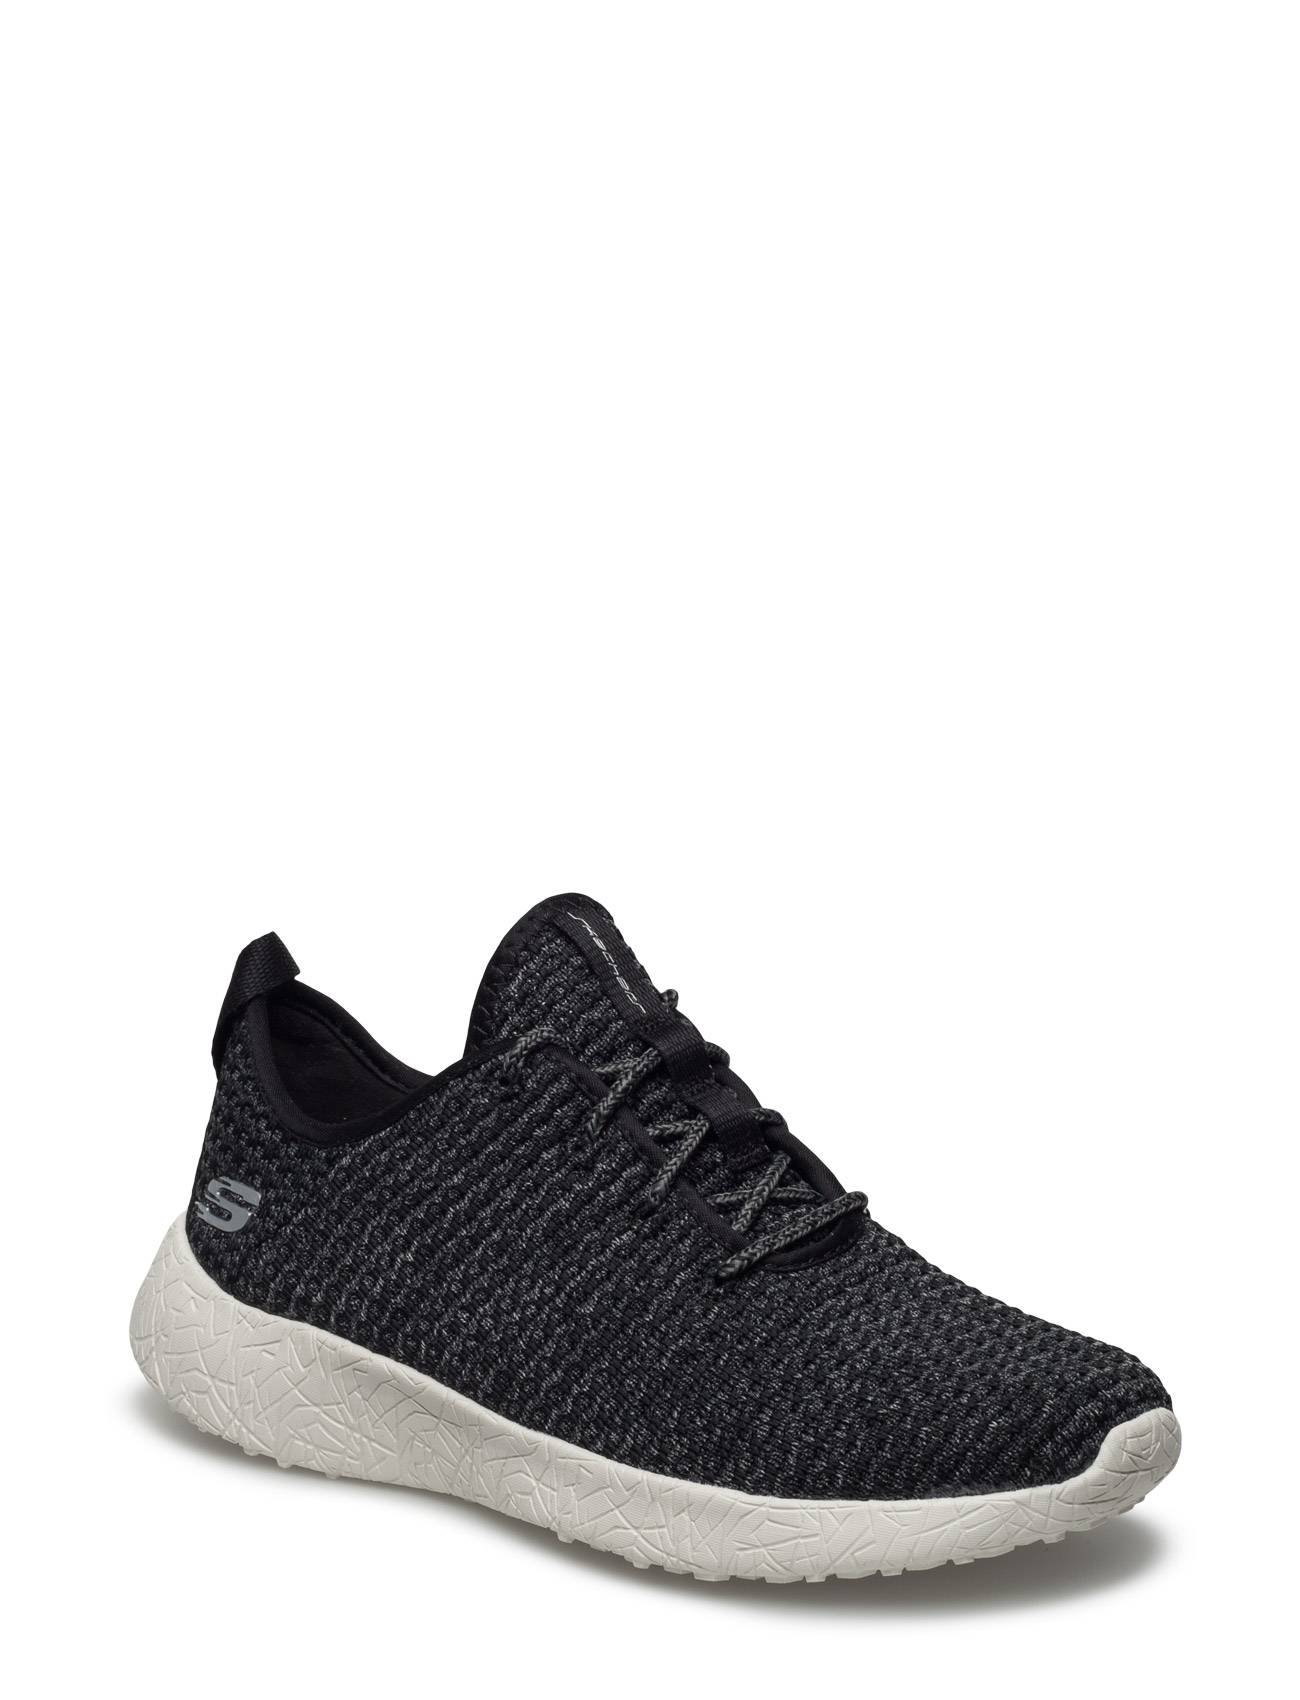 Skechers Womens Burst - City Scene